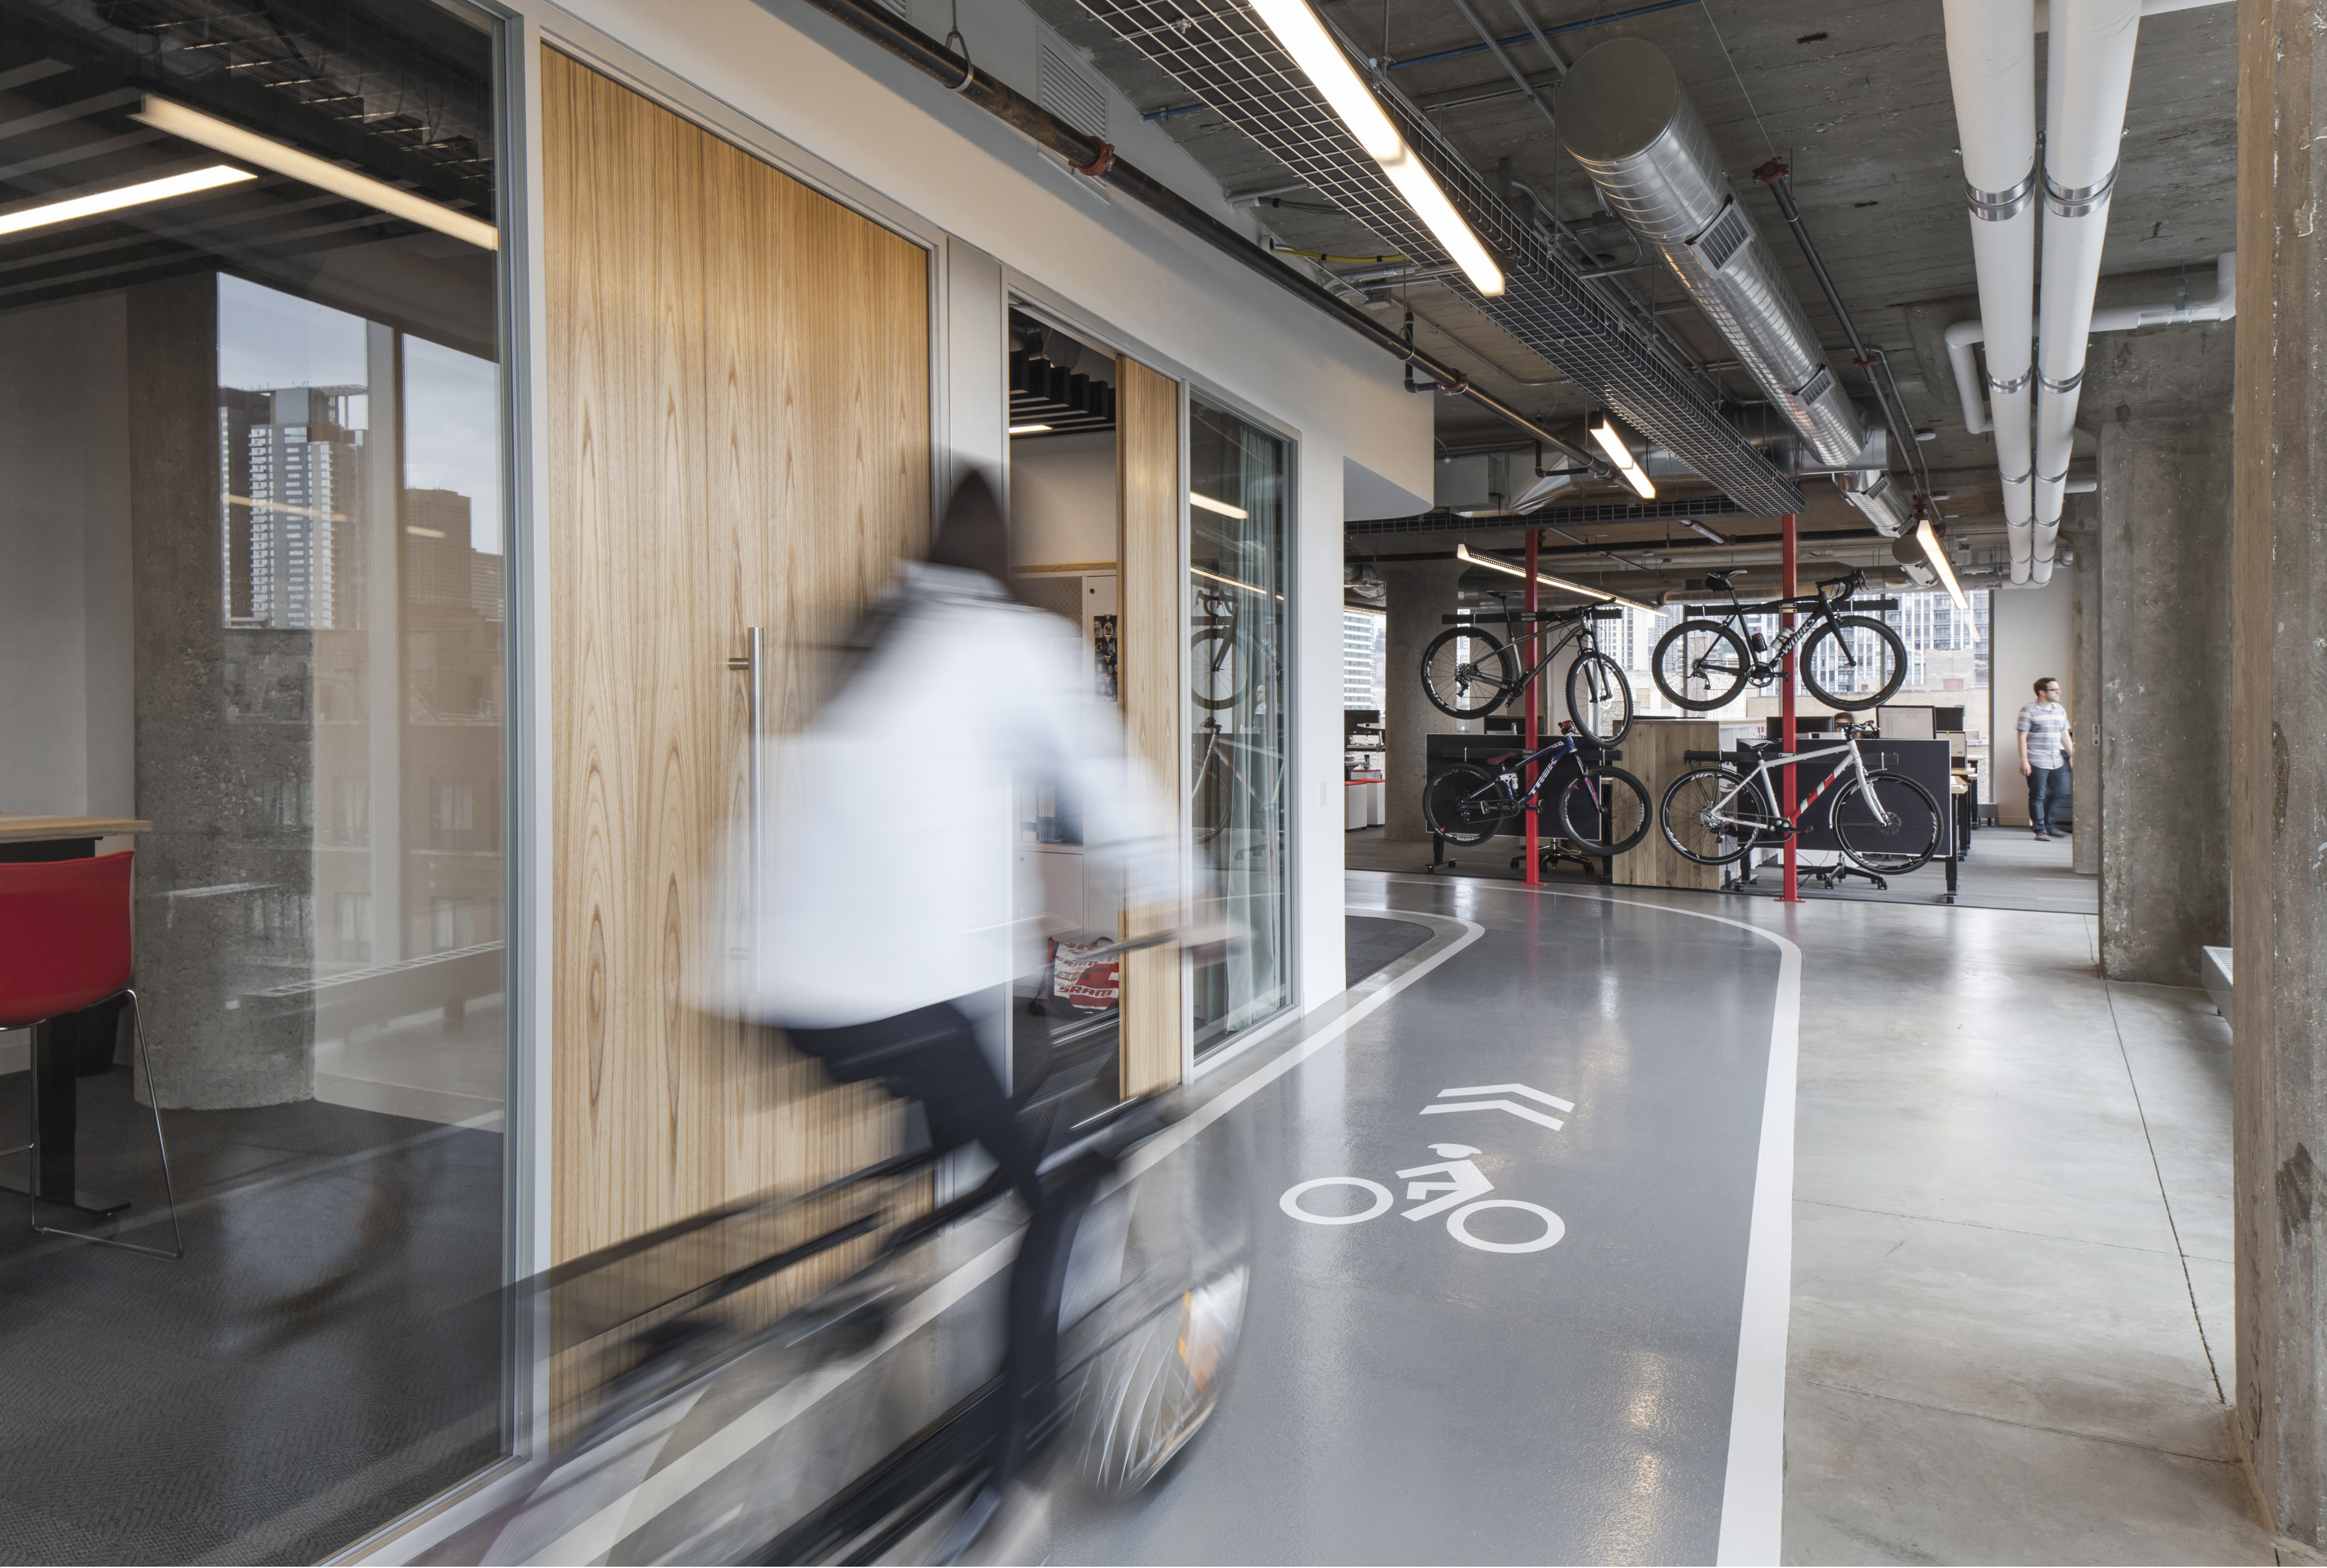 The office features a 1/8 mile bike track.